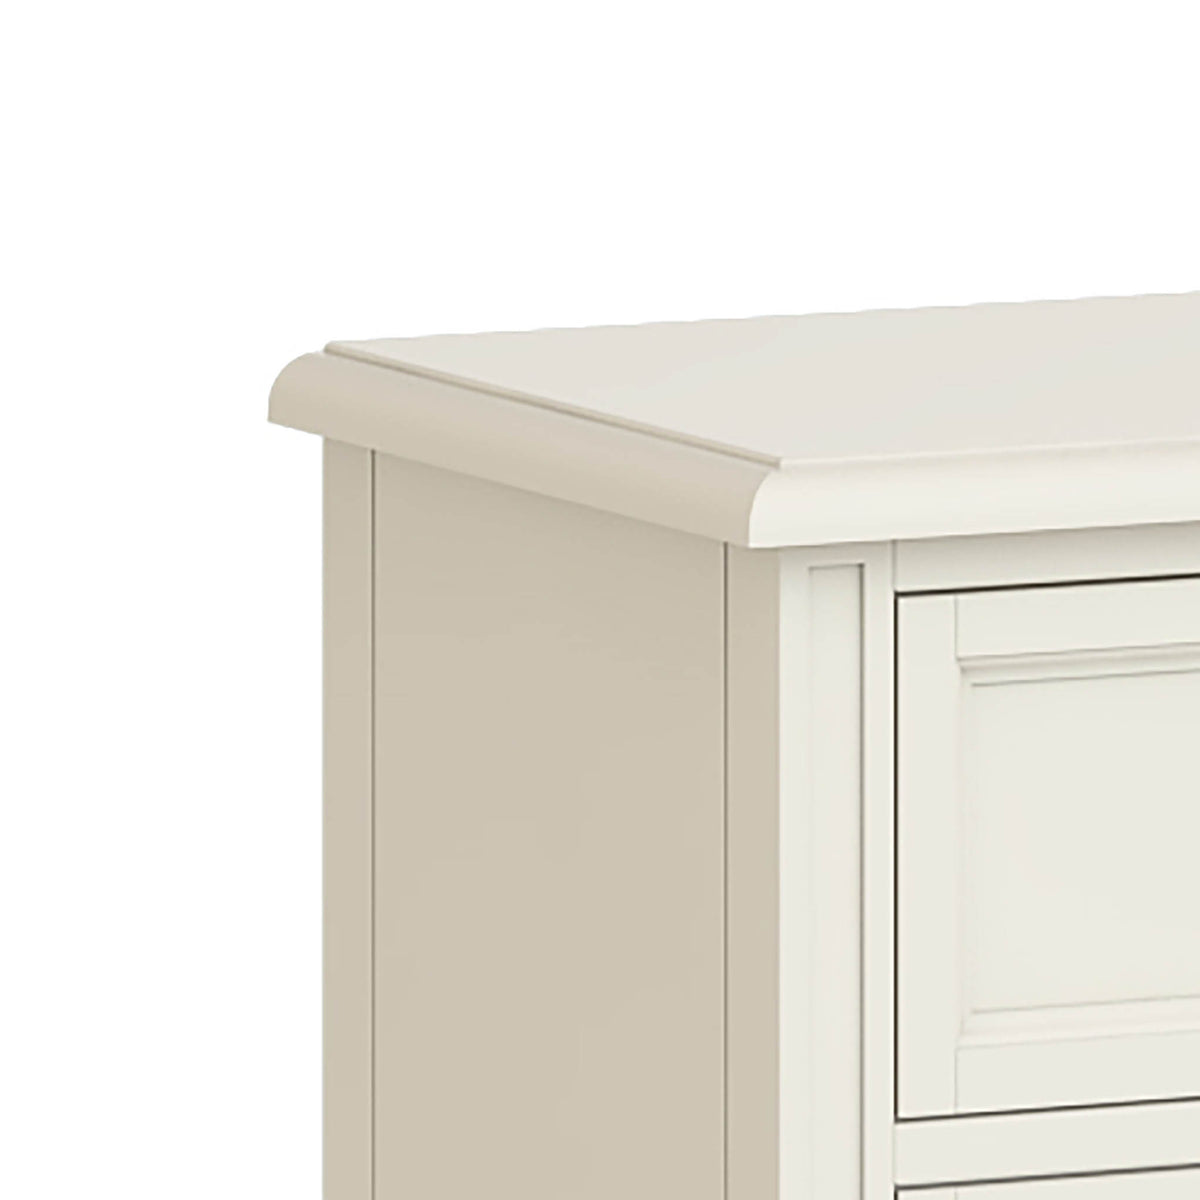 Mulsanne Cream 3 Over 4 Chest of Drawers - Close Up of Top Corner